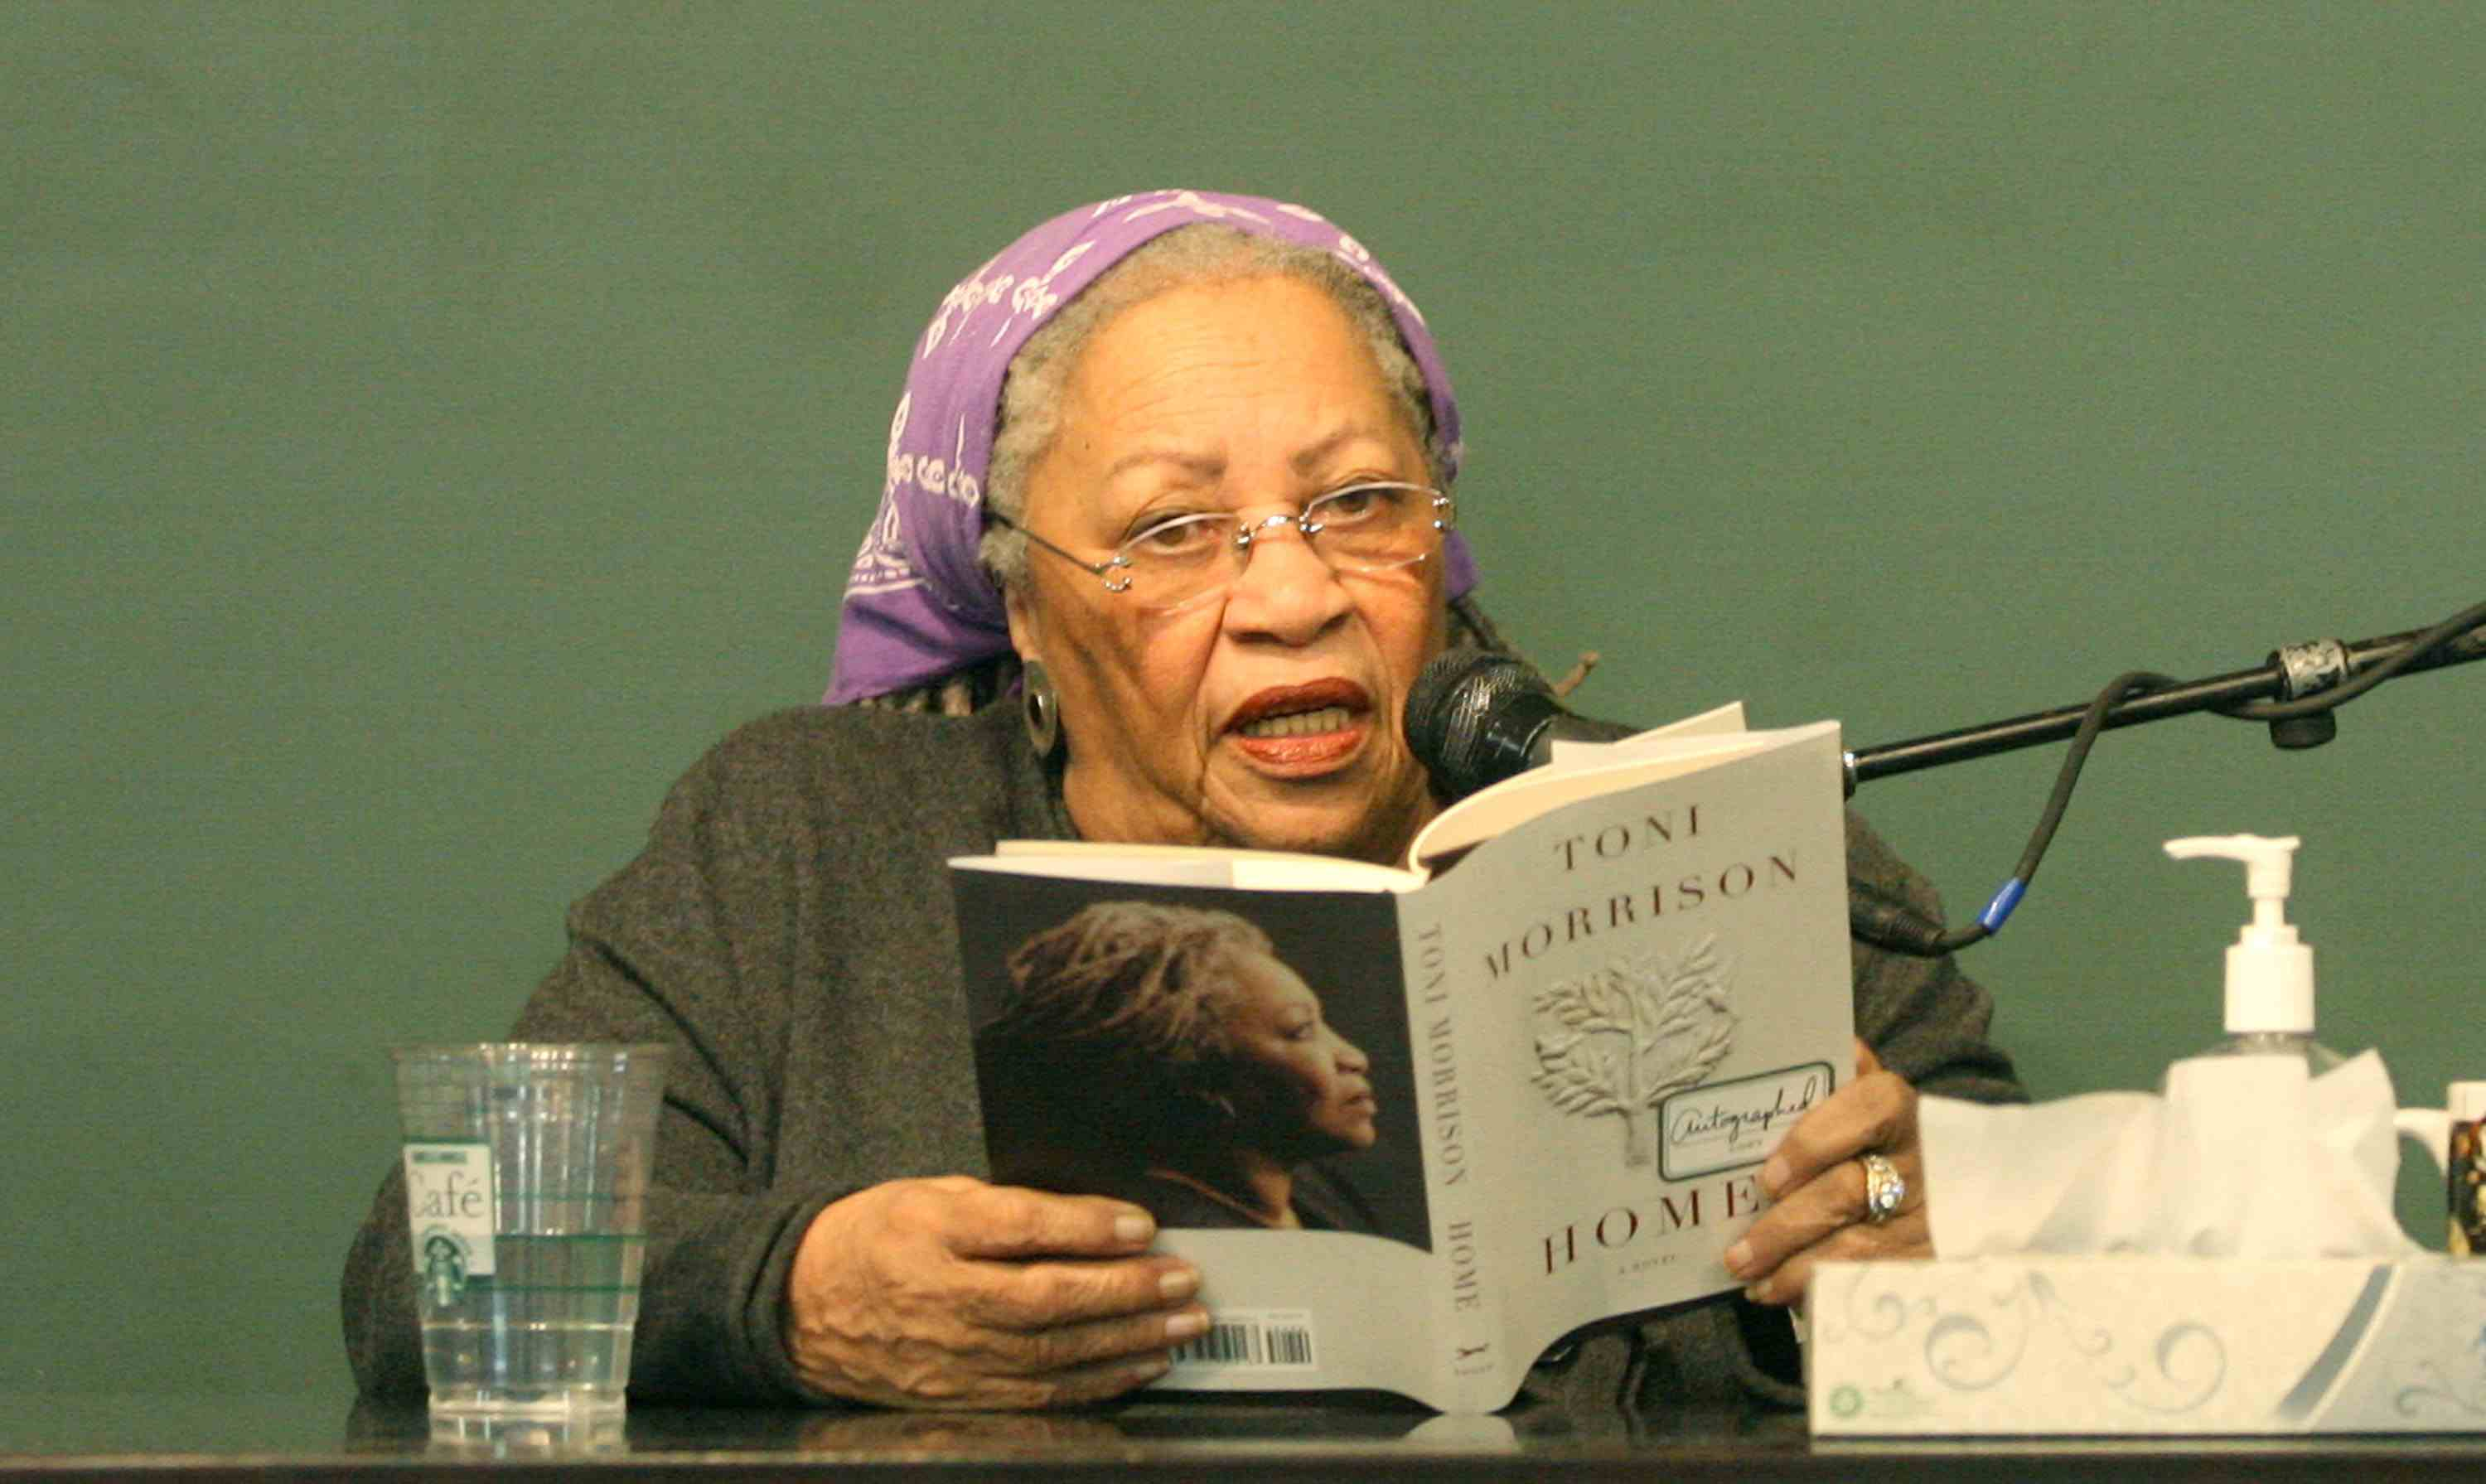 Toni Morrison Signs Copies Of 'Home'